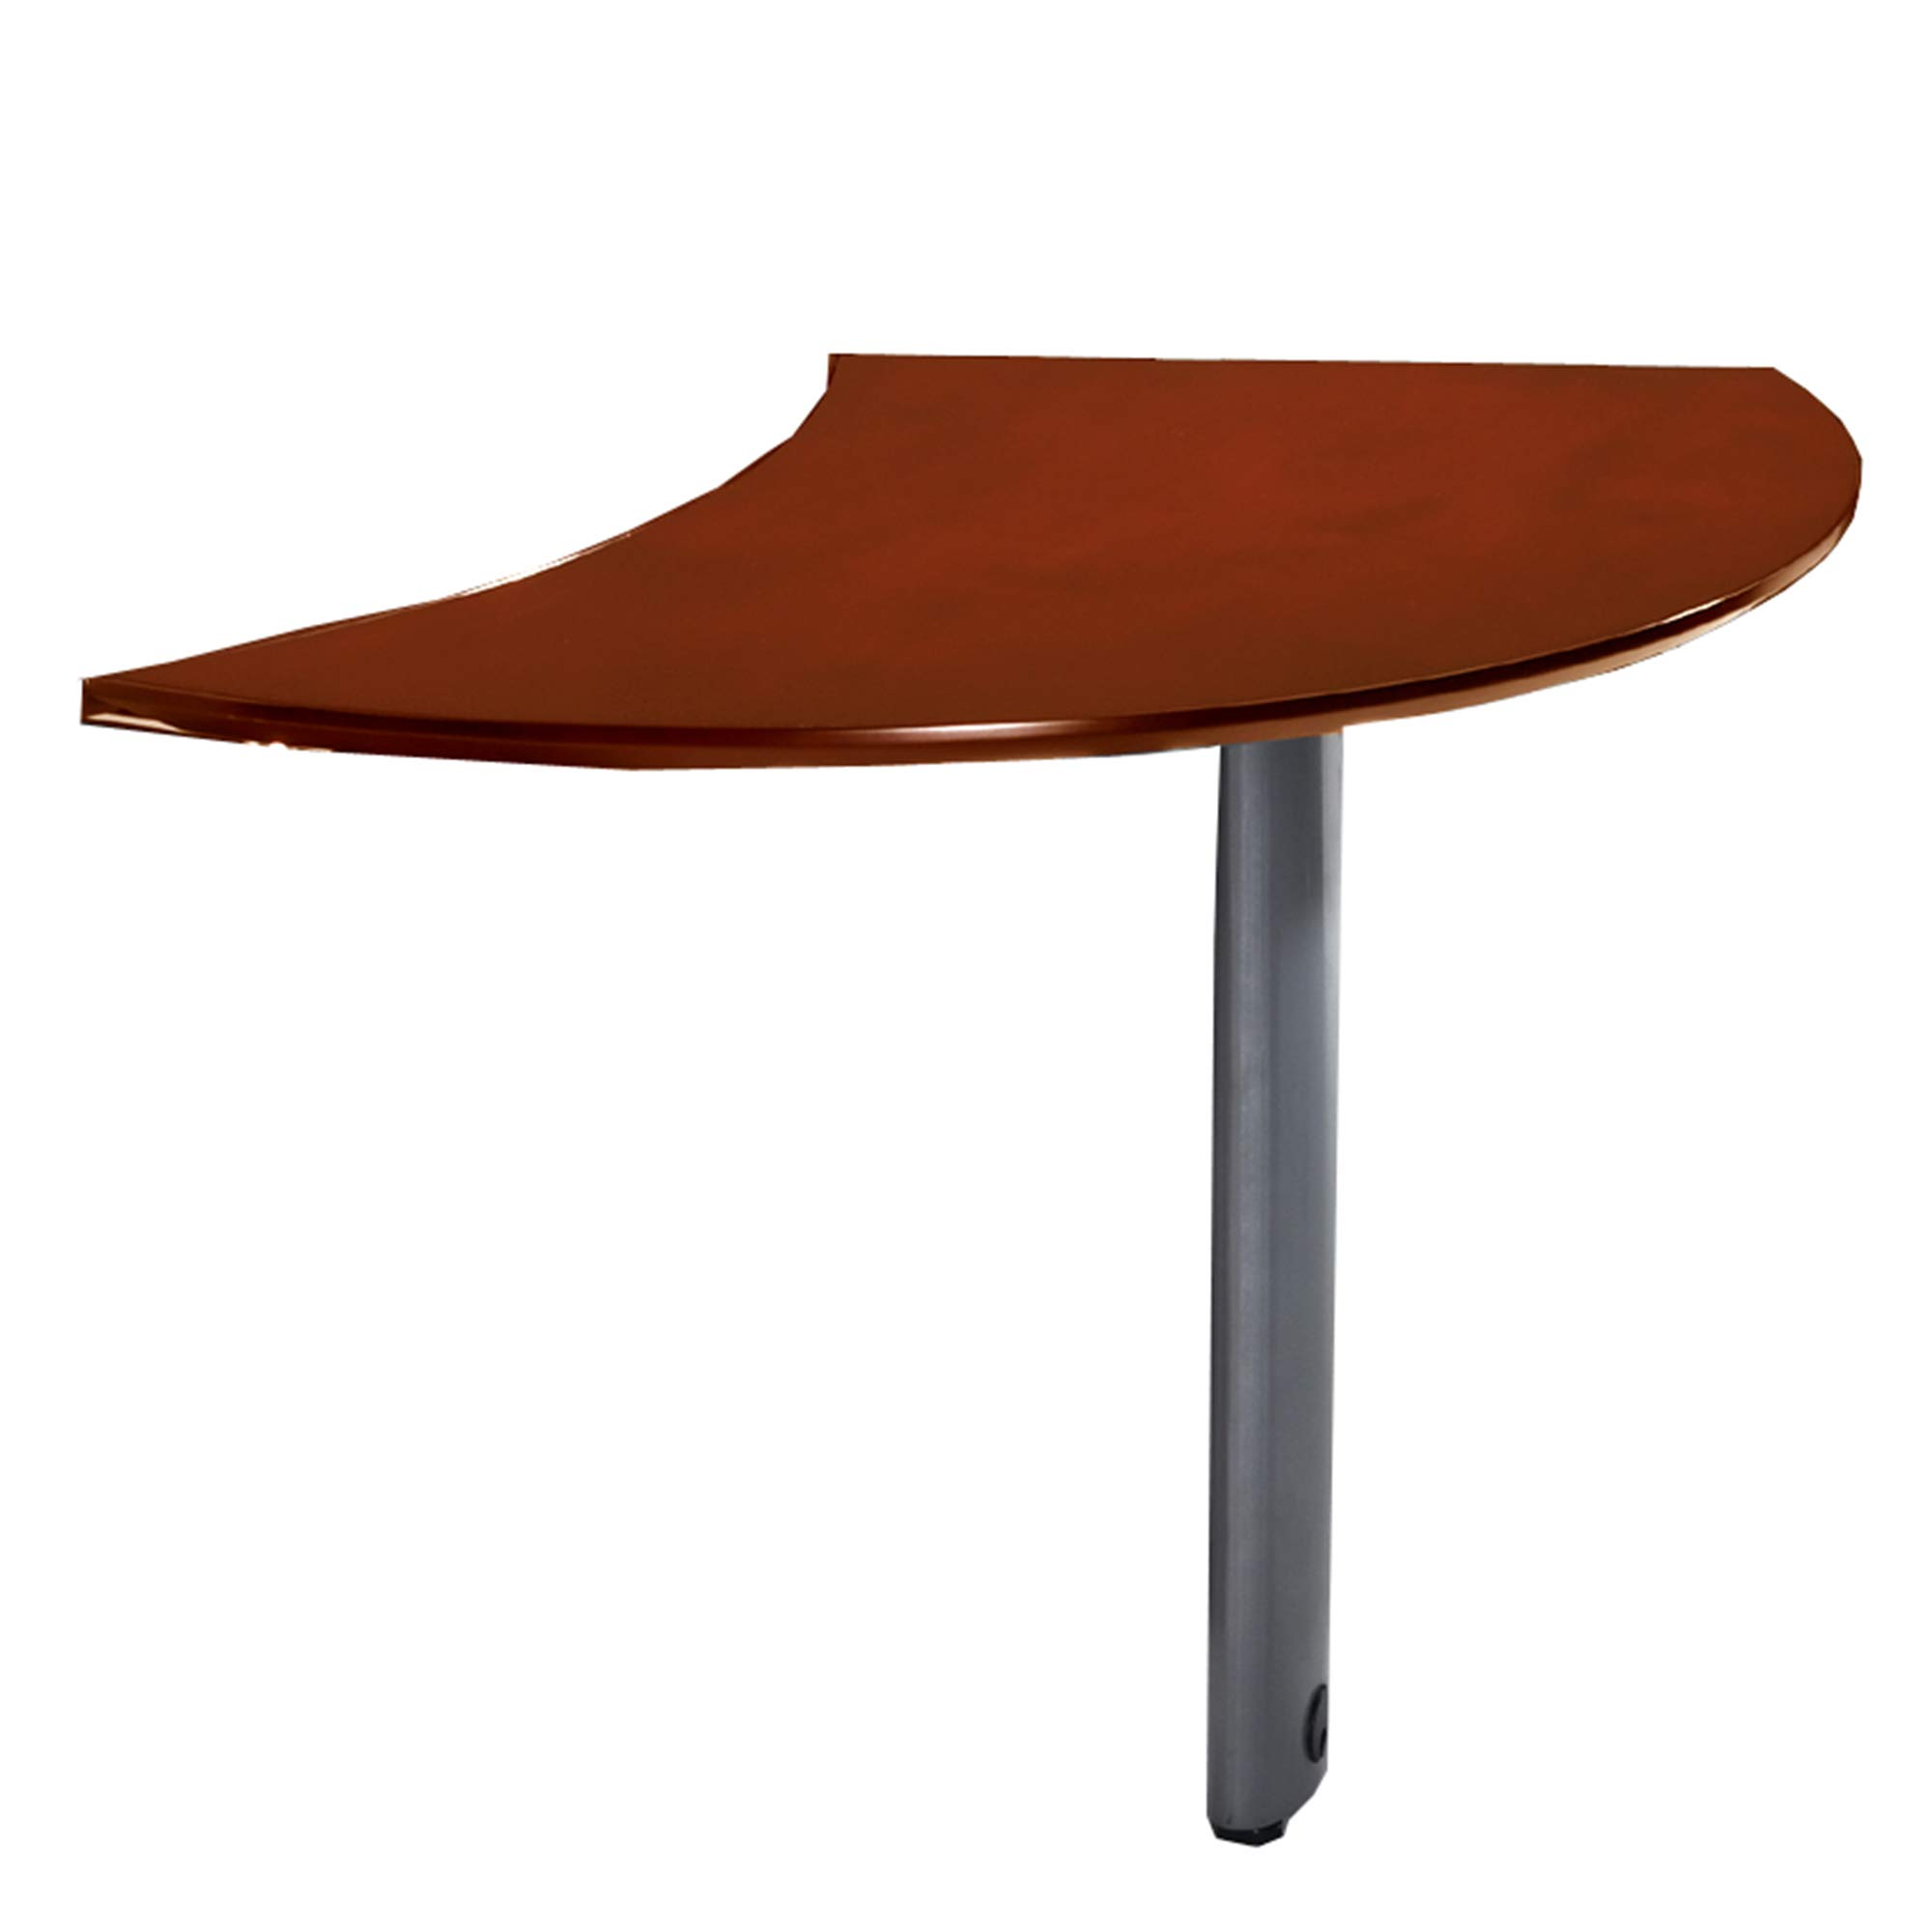 Mayline NEXTLCRY Napoli Curved Desk Left Extension for use with Desks. sold separately, Sierra Cherry Veneer by Safco